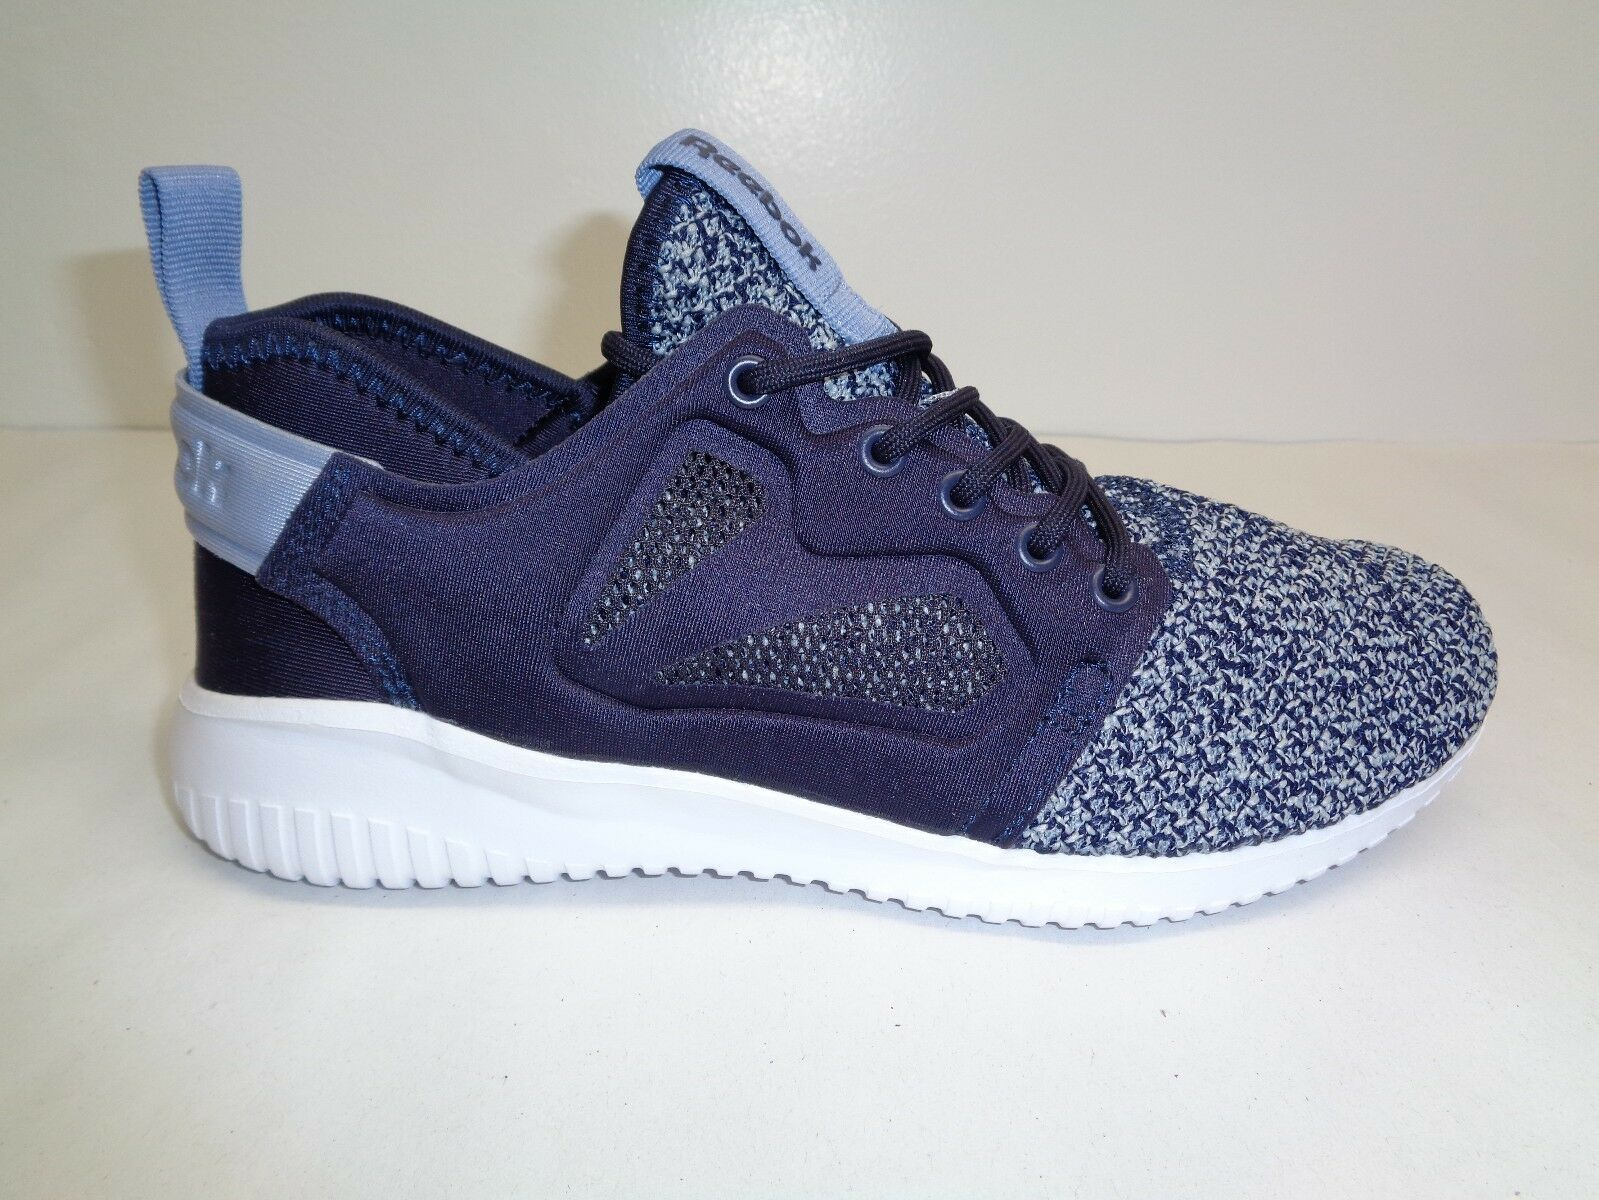 Reebok Size 6 SKYCUSH EVOLUTION LUX Purple Training Sneakers New Womens shoes